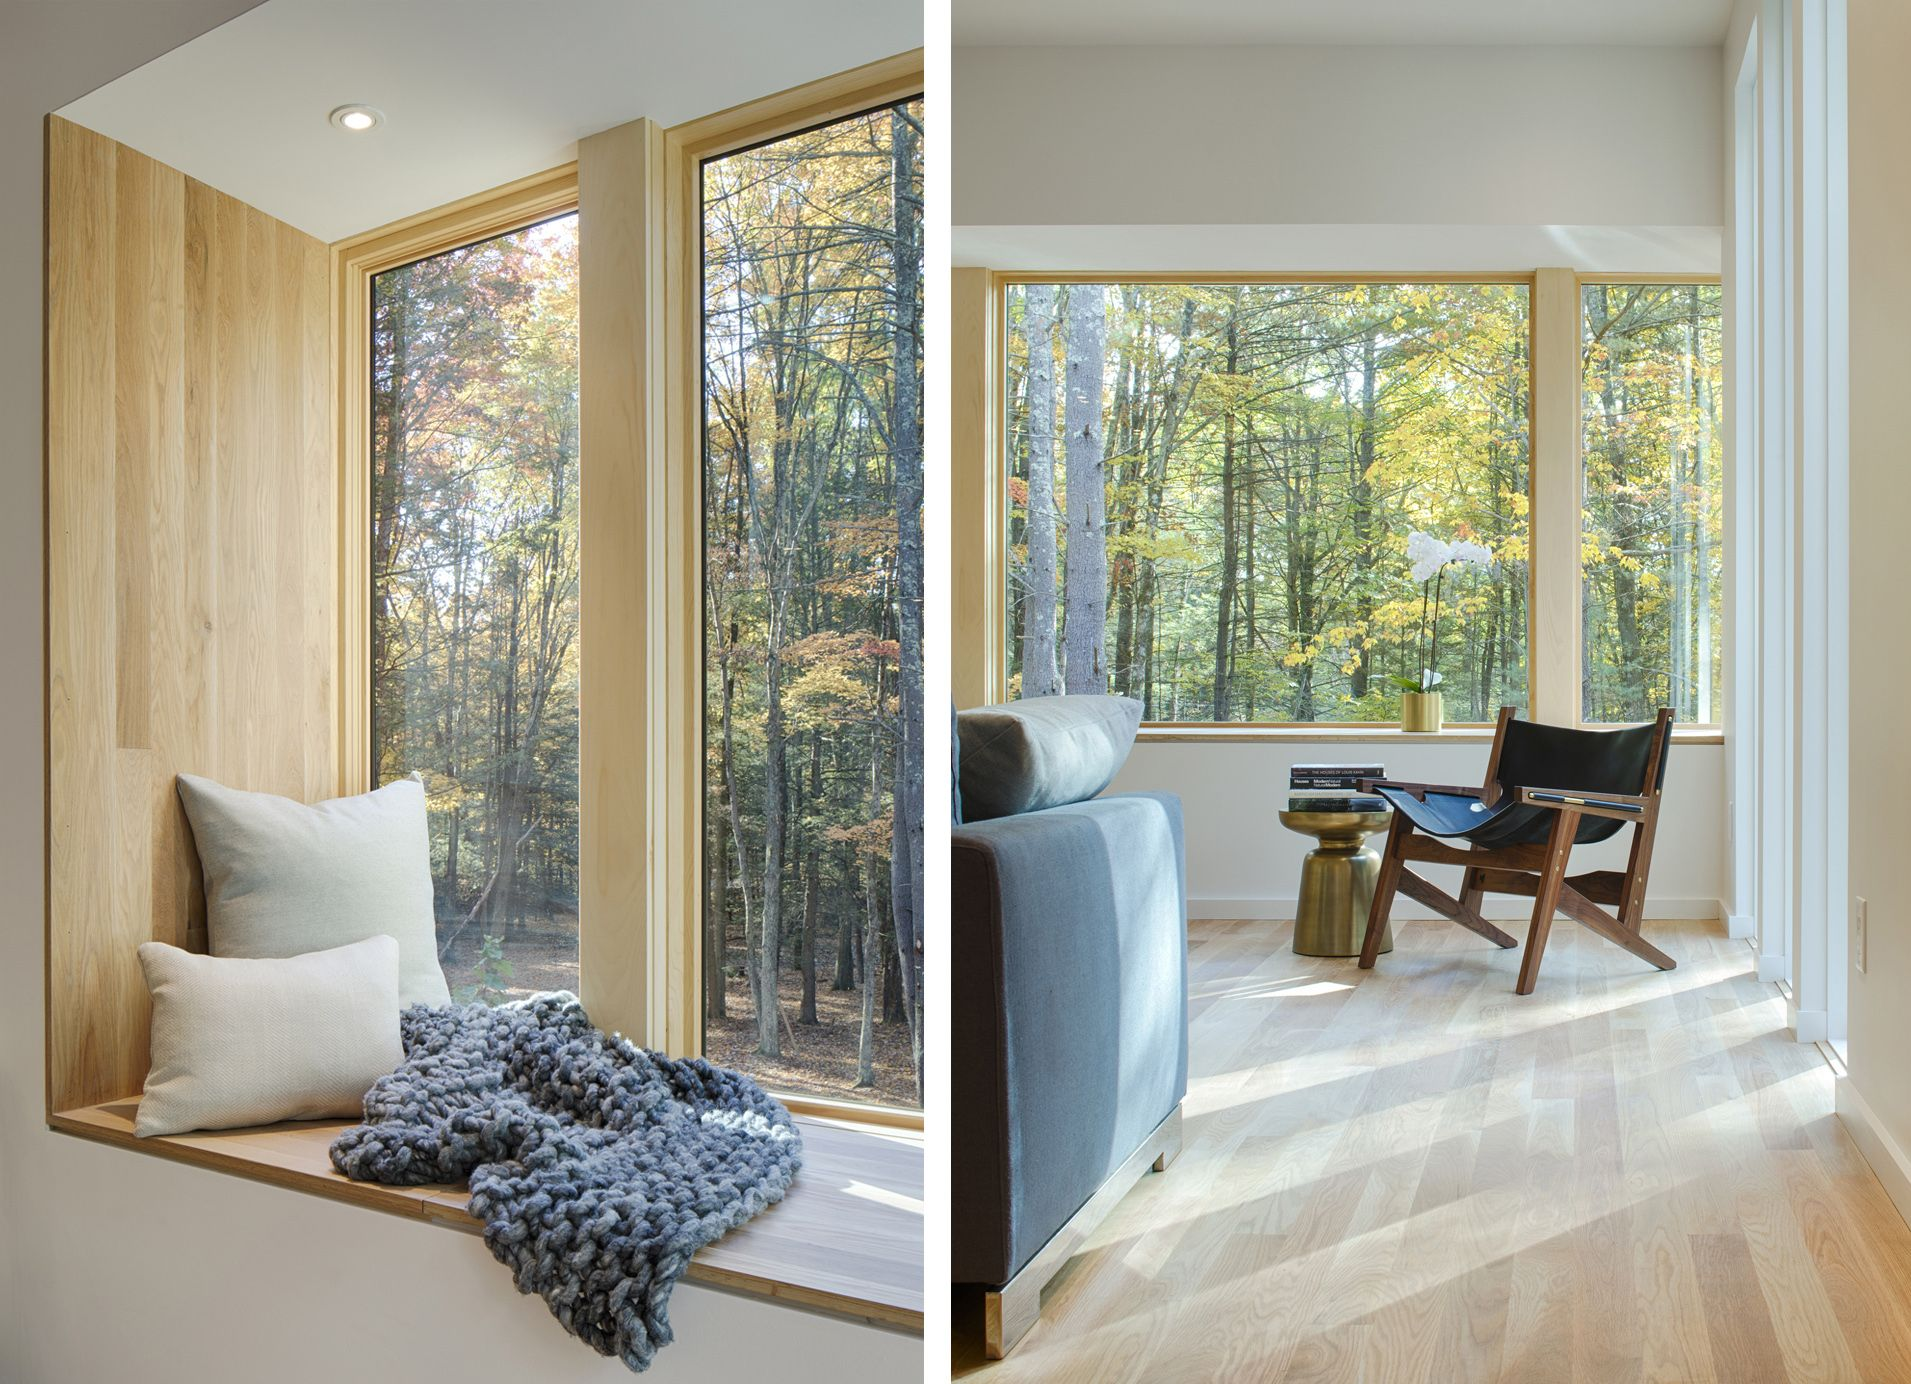 8 Beautifully Cozy Modern Window Seats That Make You Want To Well Get Cozy I Have Been Waiting To Write Th Window Seat Design Modern Window Seat Window Seat